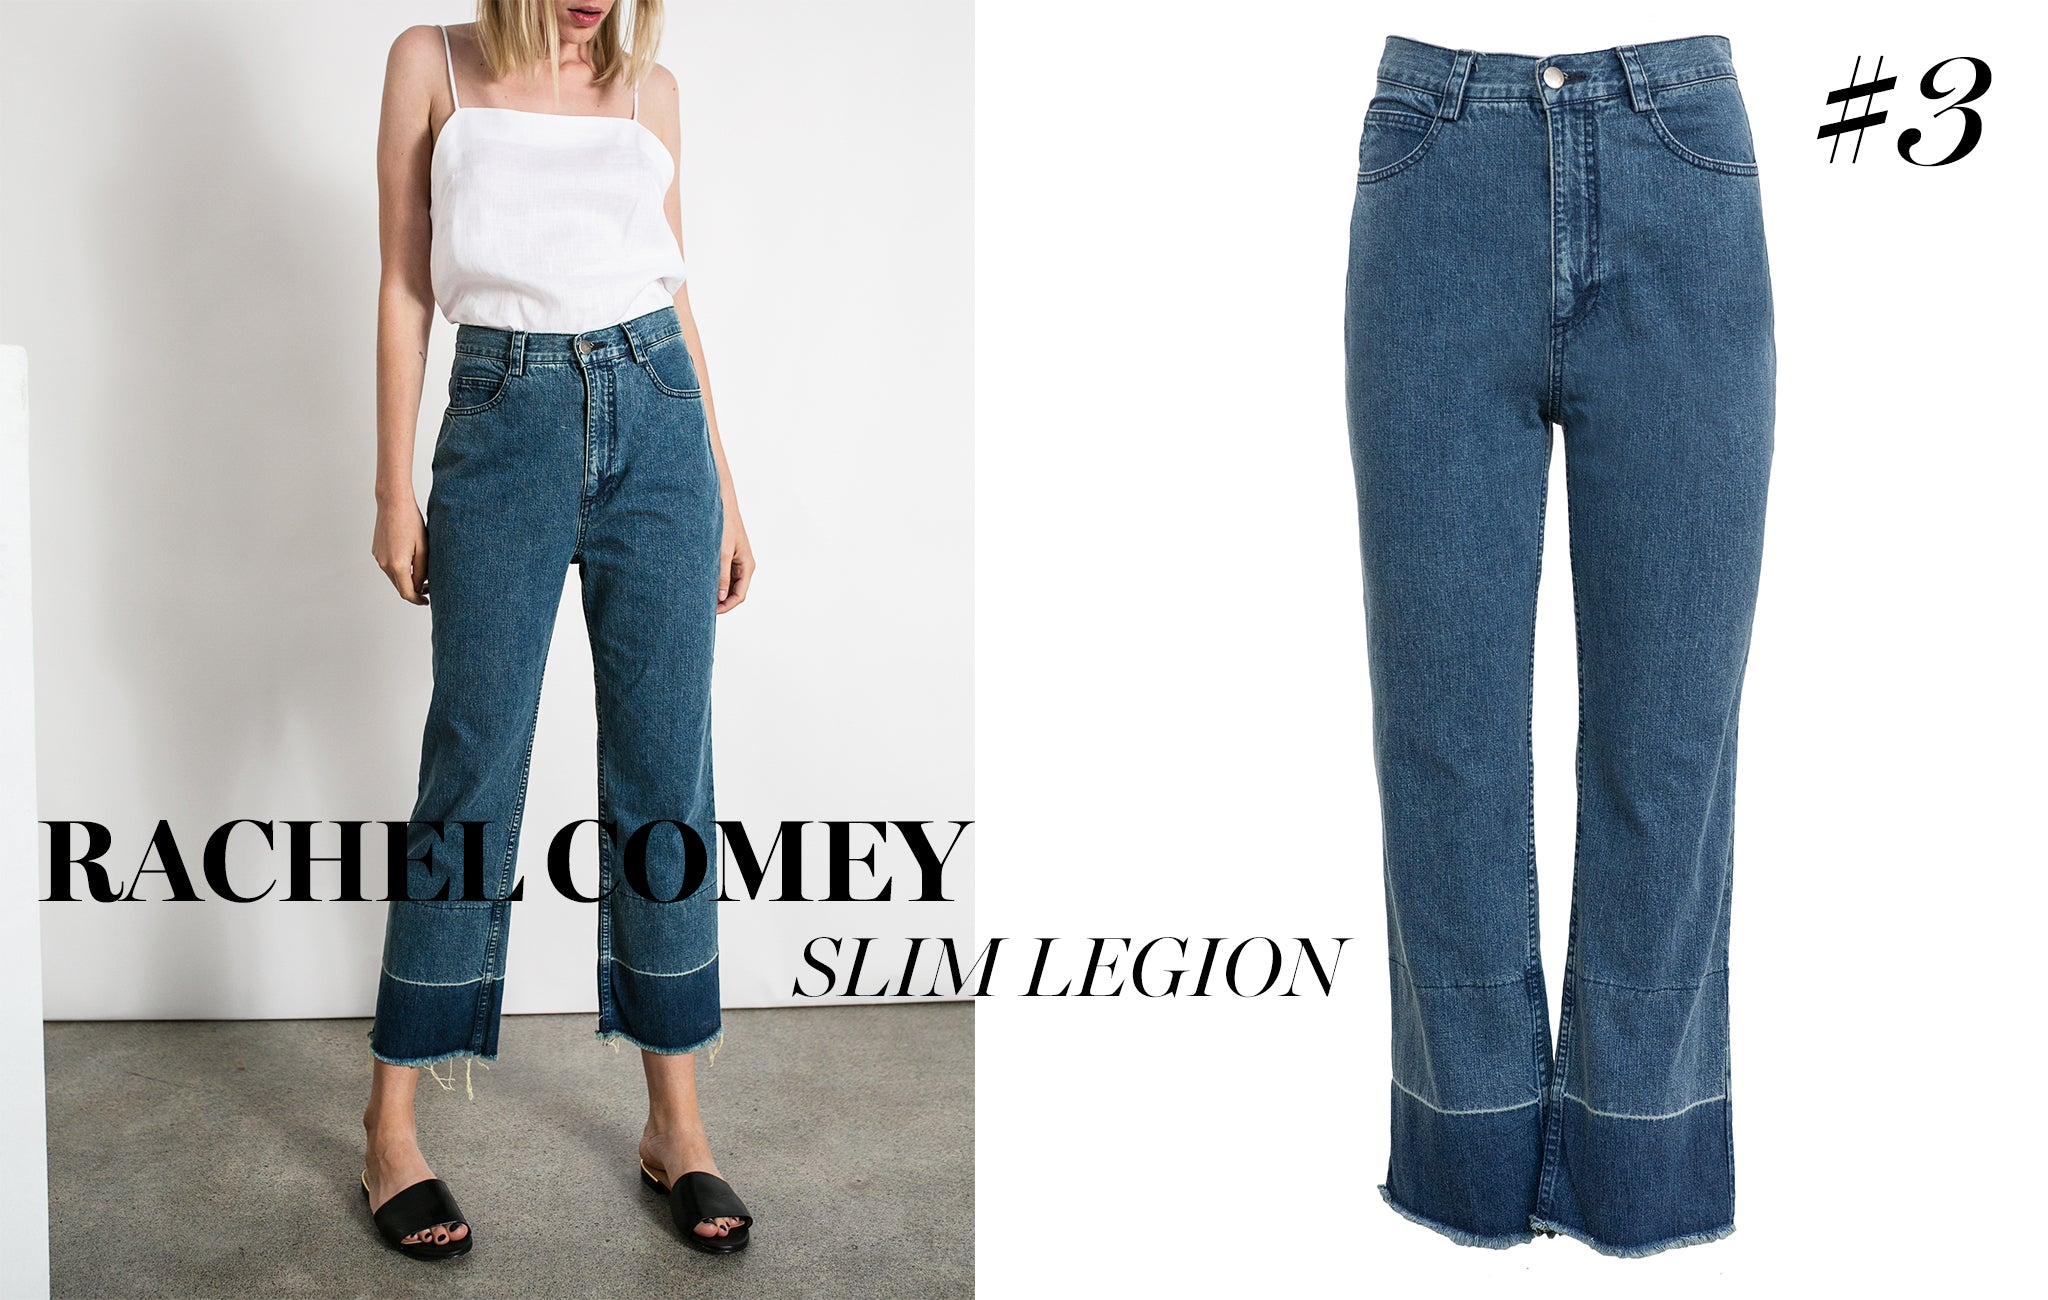 Detailed Denim by Rachel Comey from The UNDONE